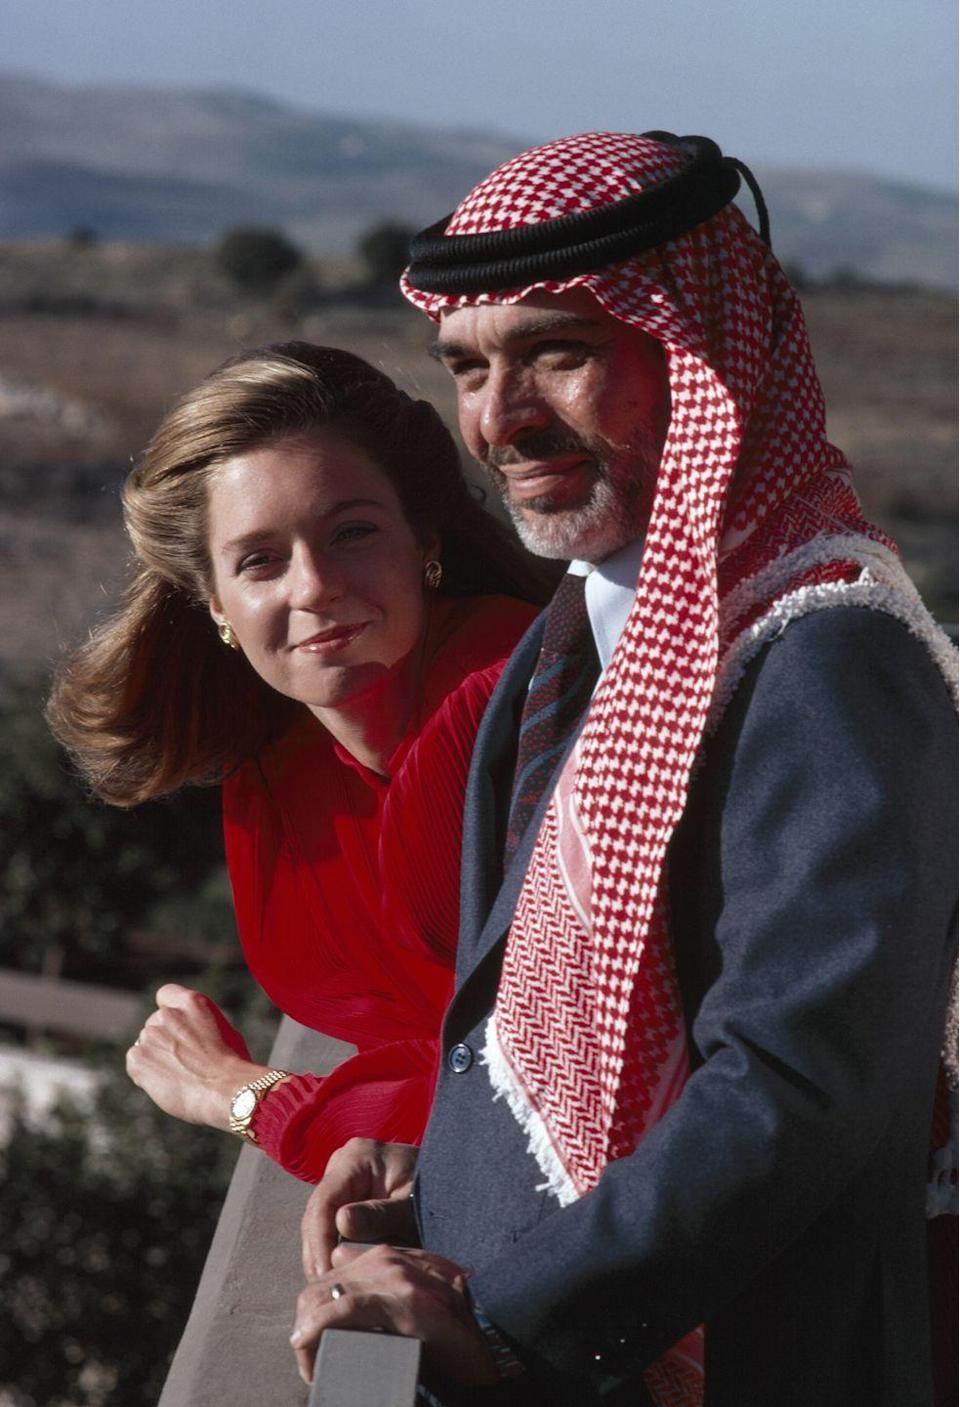 <p>Queen Noor, born in Washington, D.C. as Lisa Halaby, married King Hussein of Jordan in 1978 after meeting the previous year. The Princeton graduate worked in the airline industry and first met the king at the Queen Alia International Airport, named after his first wife who died in a helicopter crash. The couple stayed together until his death in 1999. </p>